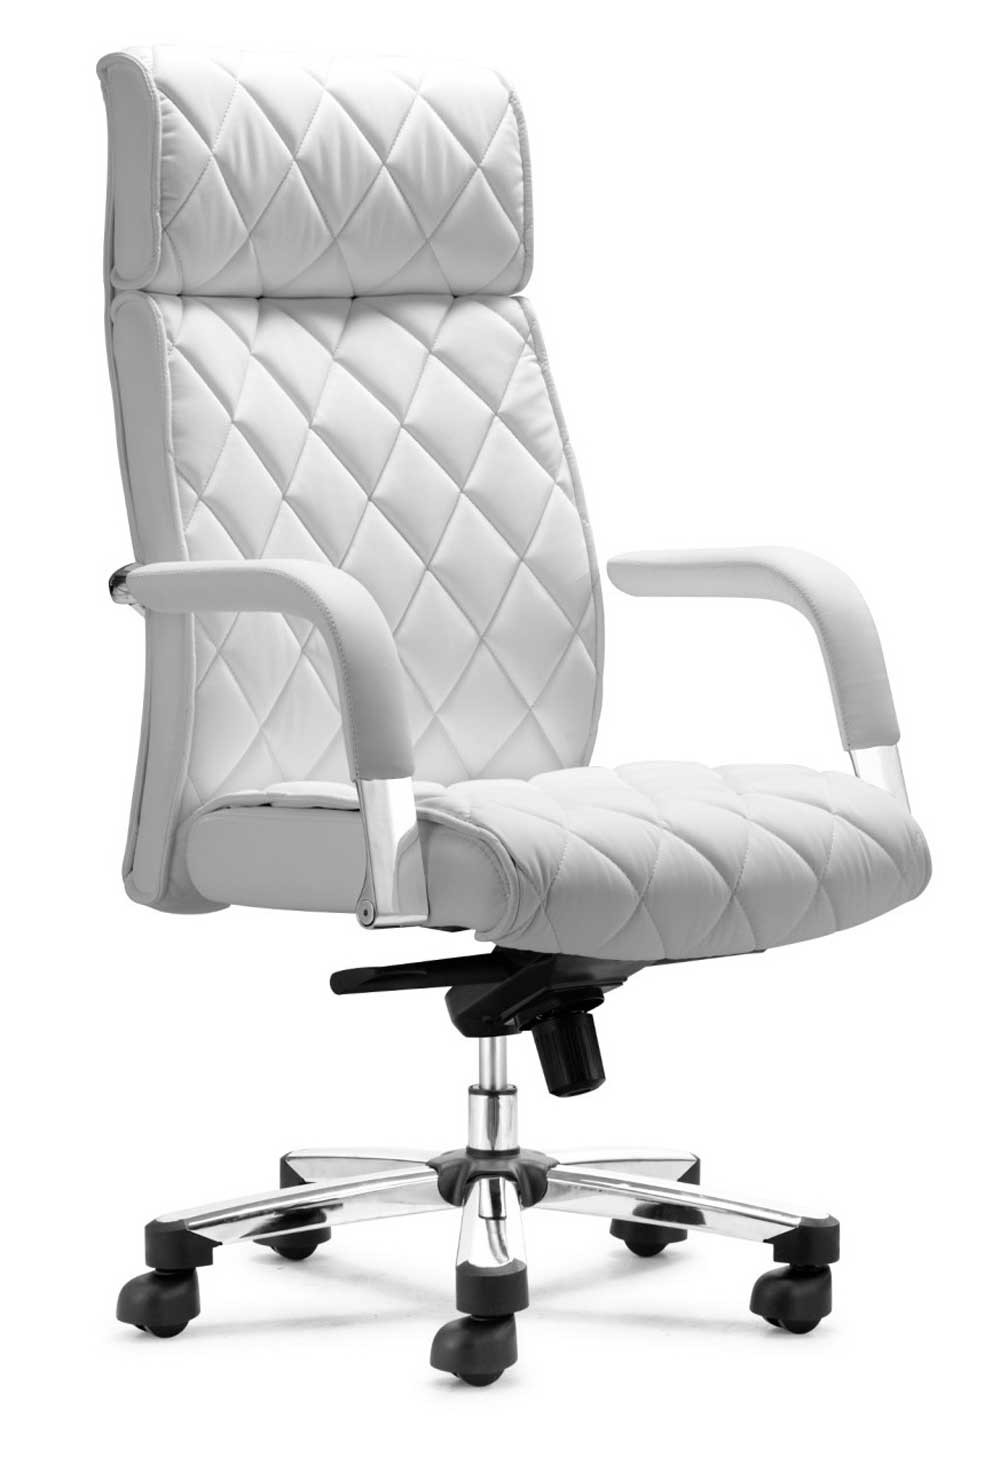 Best ideas about White Office Chair . Save or Pin fice chairs online Now.